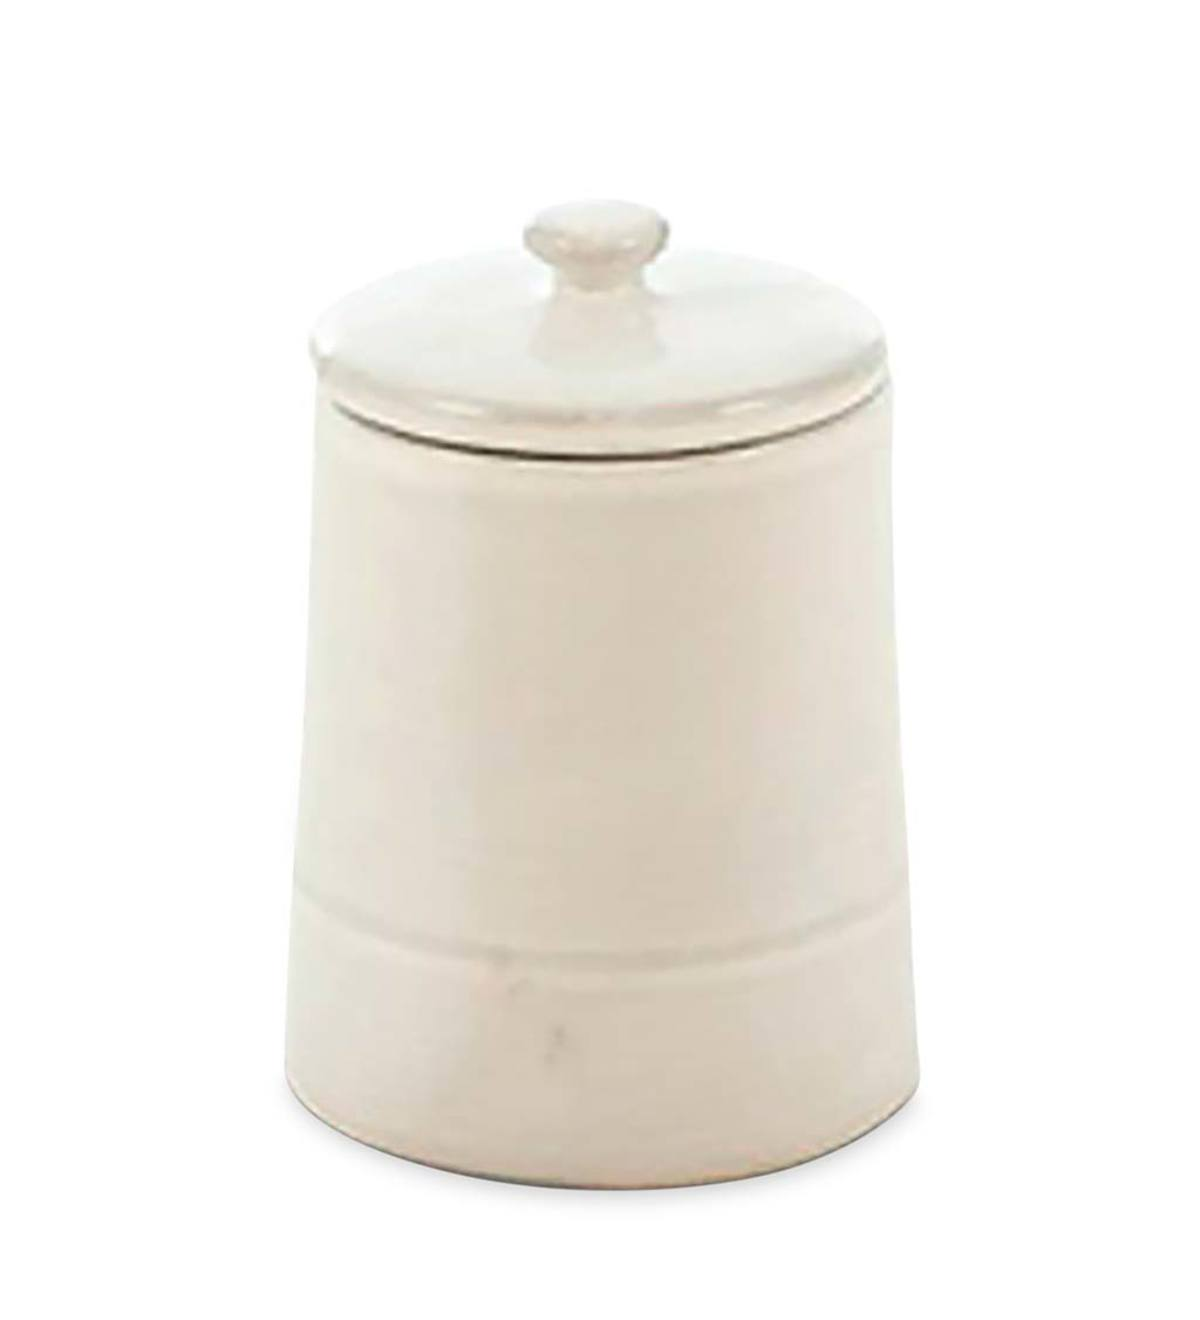 Cucina Kitchen Canisters - Large - White